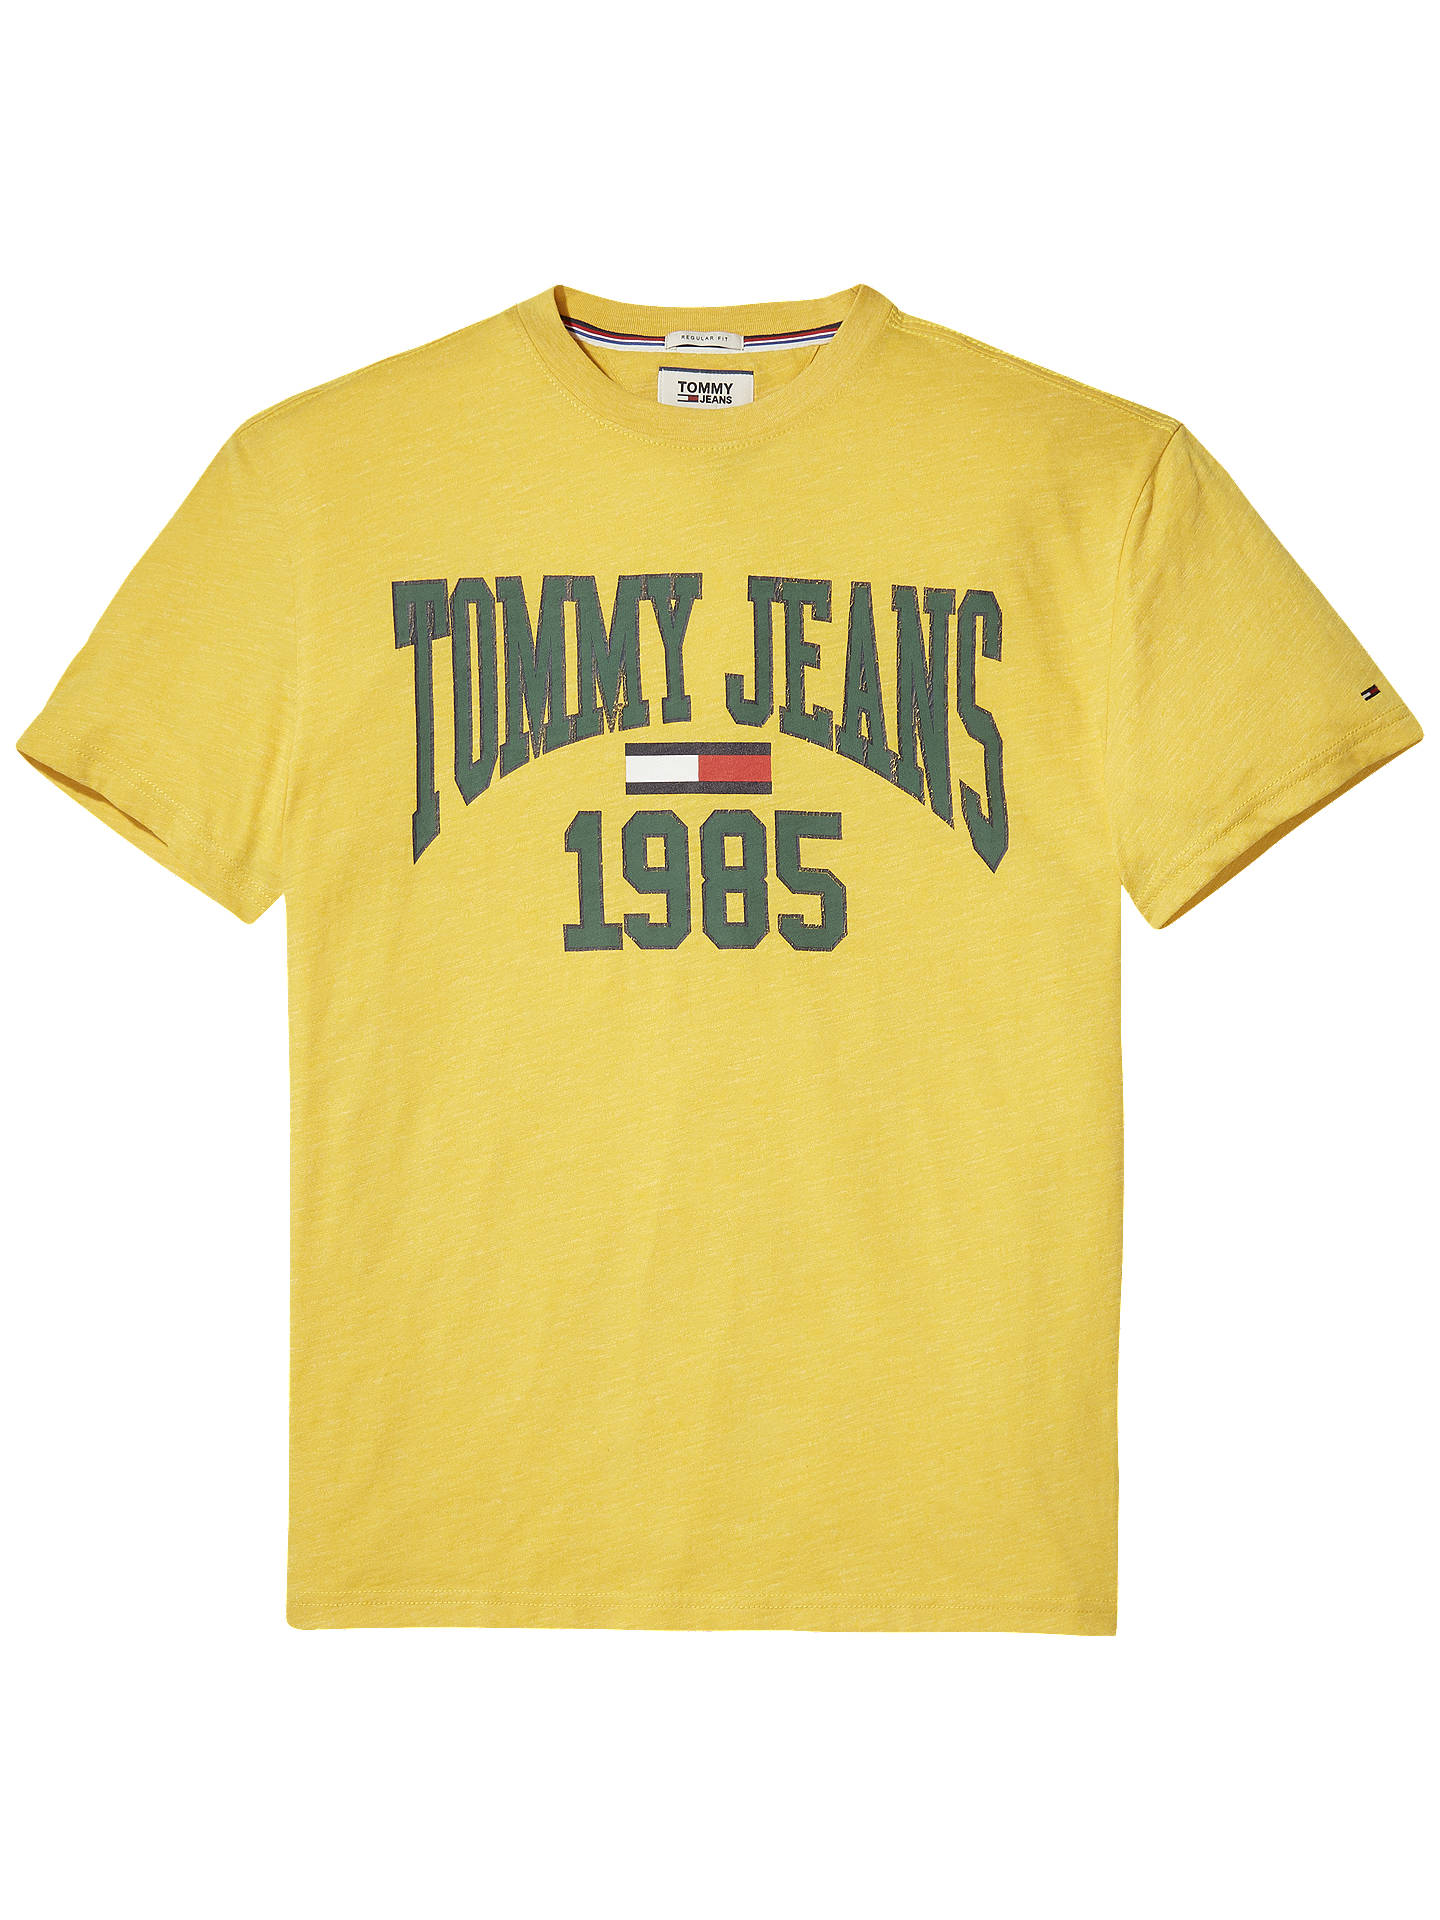 BuyTommy Jeans Collegiate T-Shirt, Spectra Yellow, S Online at johnlewis.com